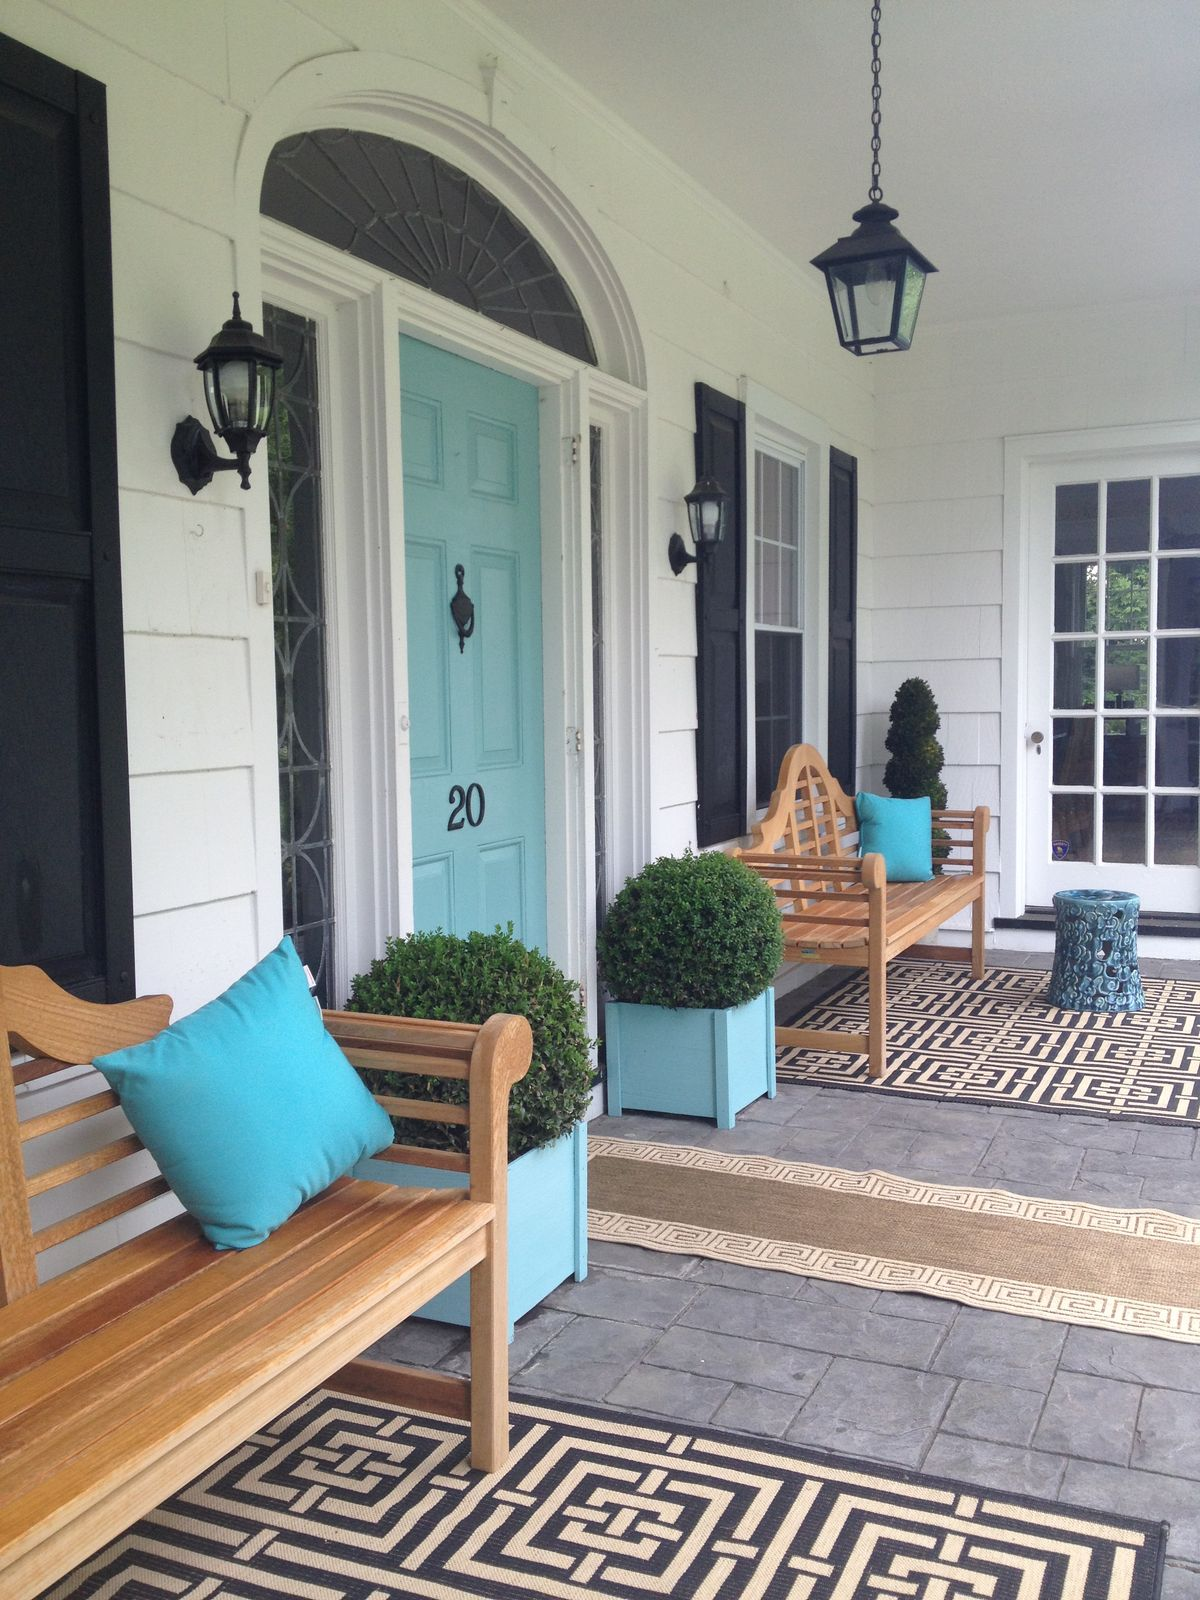 Blue Pillows Perfectly Coordinate With a Cool Blue Door